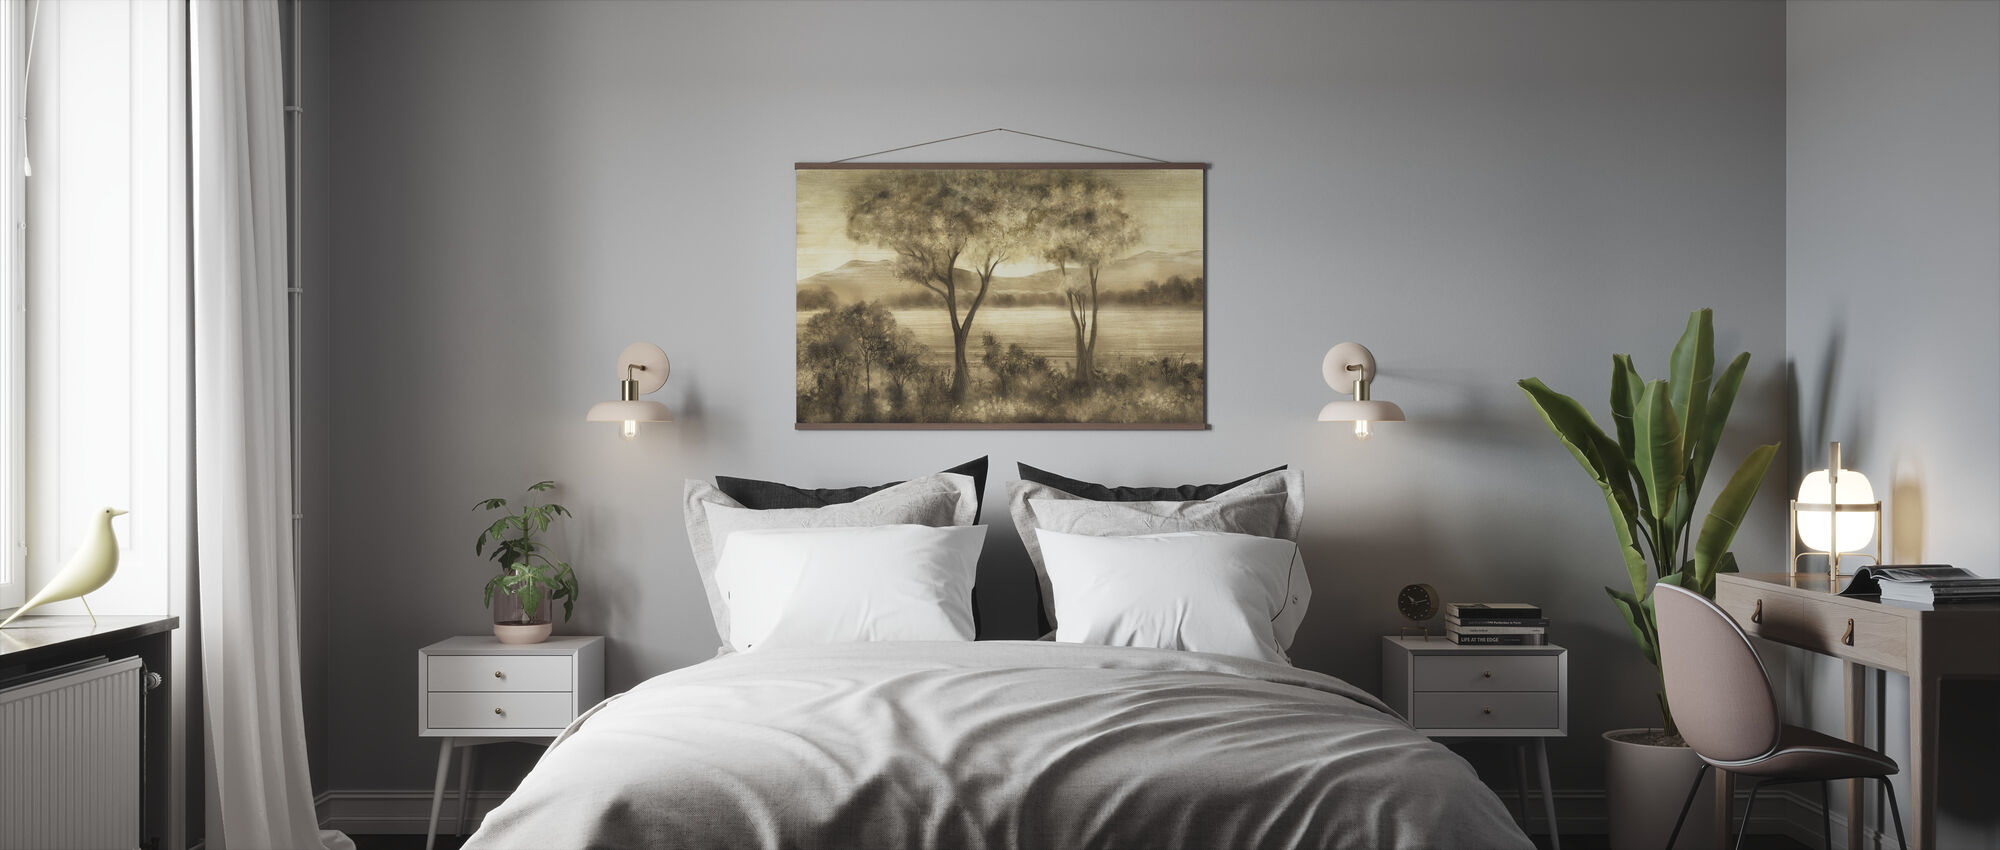 Lay of the Land - Cream - Poster - Bedroom